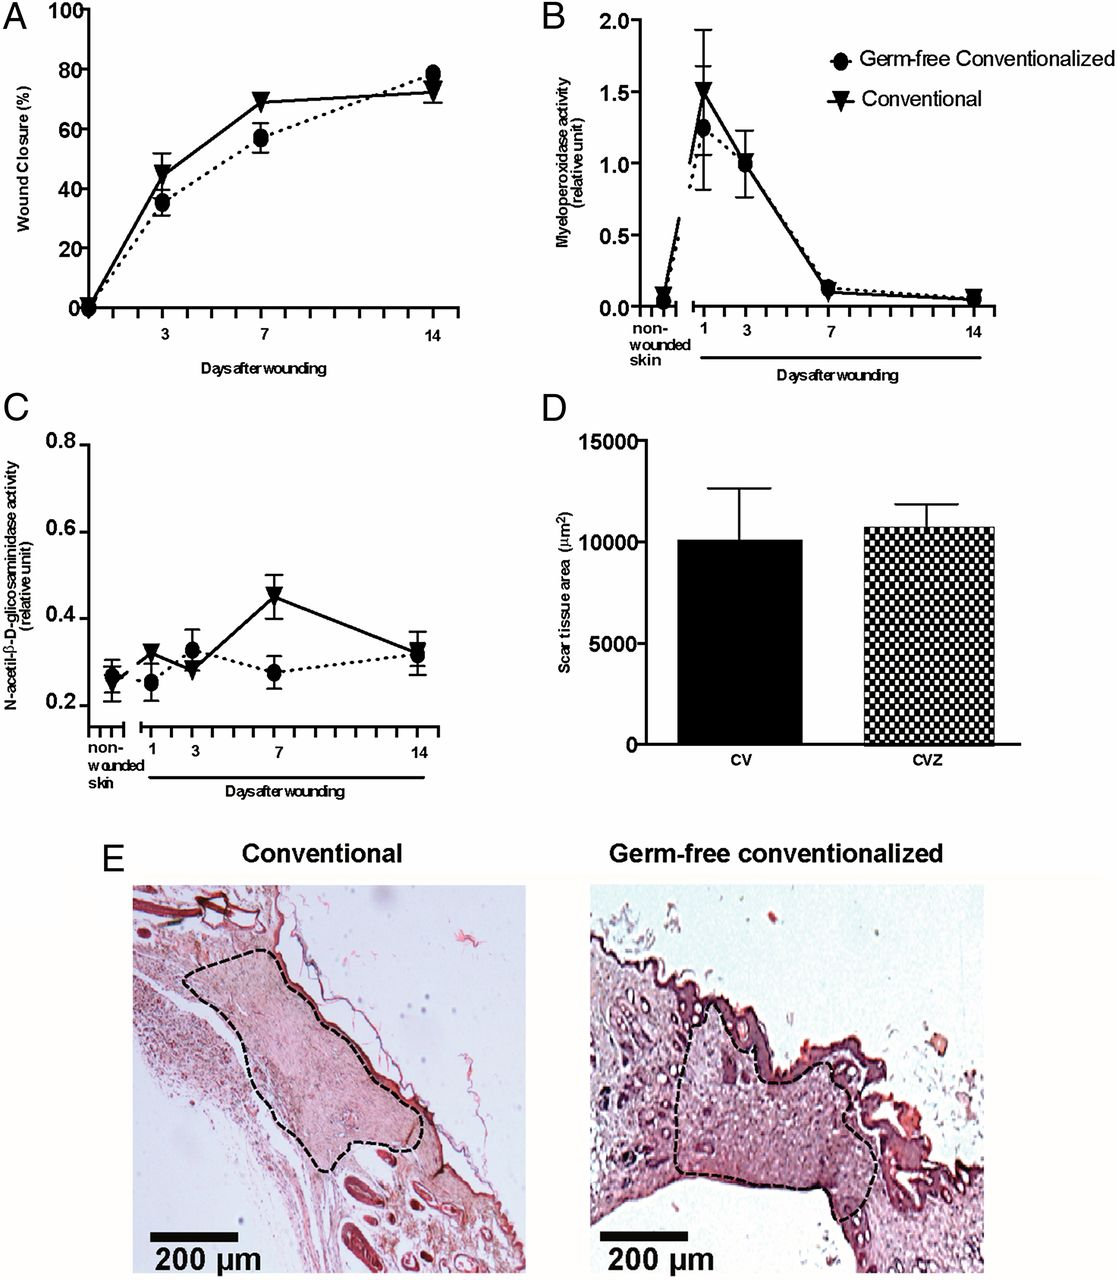 gf colonized mice restore wound healing to conventional mouse level [ 1117 x 1280 Pixel ]